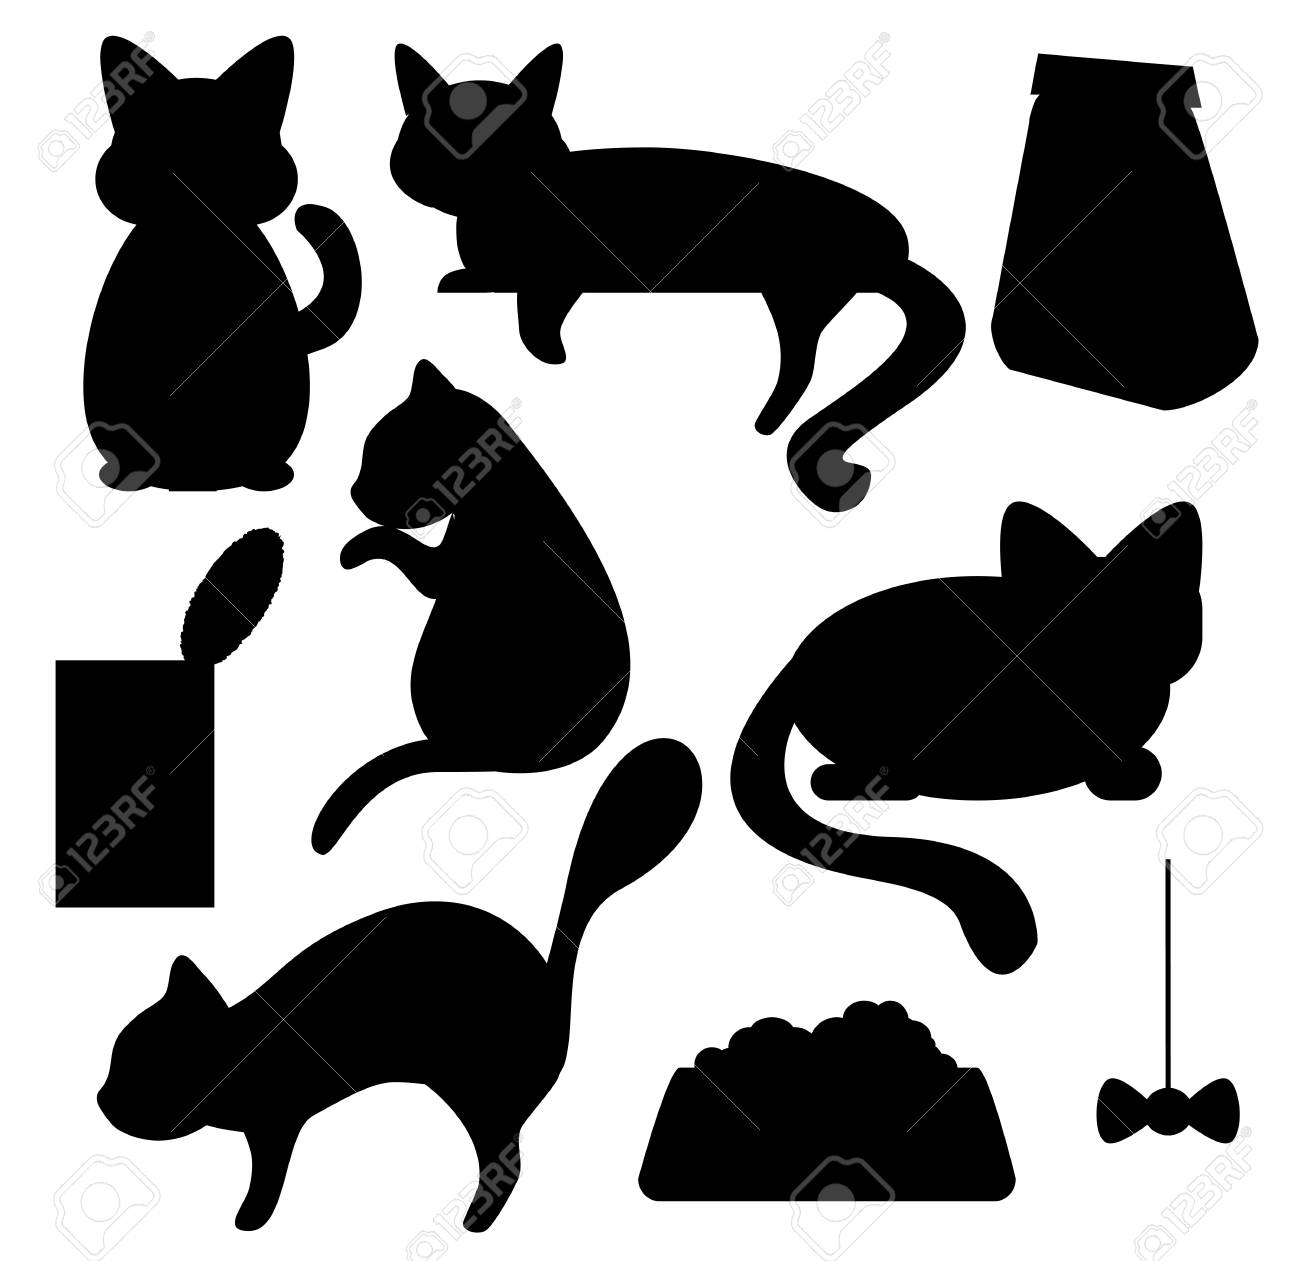 hight resolution of cats and cat food silhouettes vector clipart cat pose of relax sleep watching